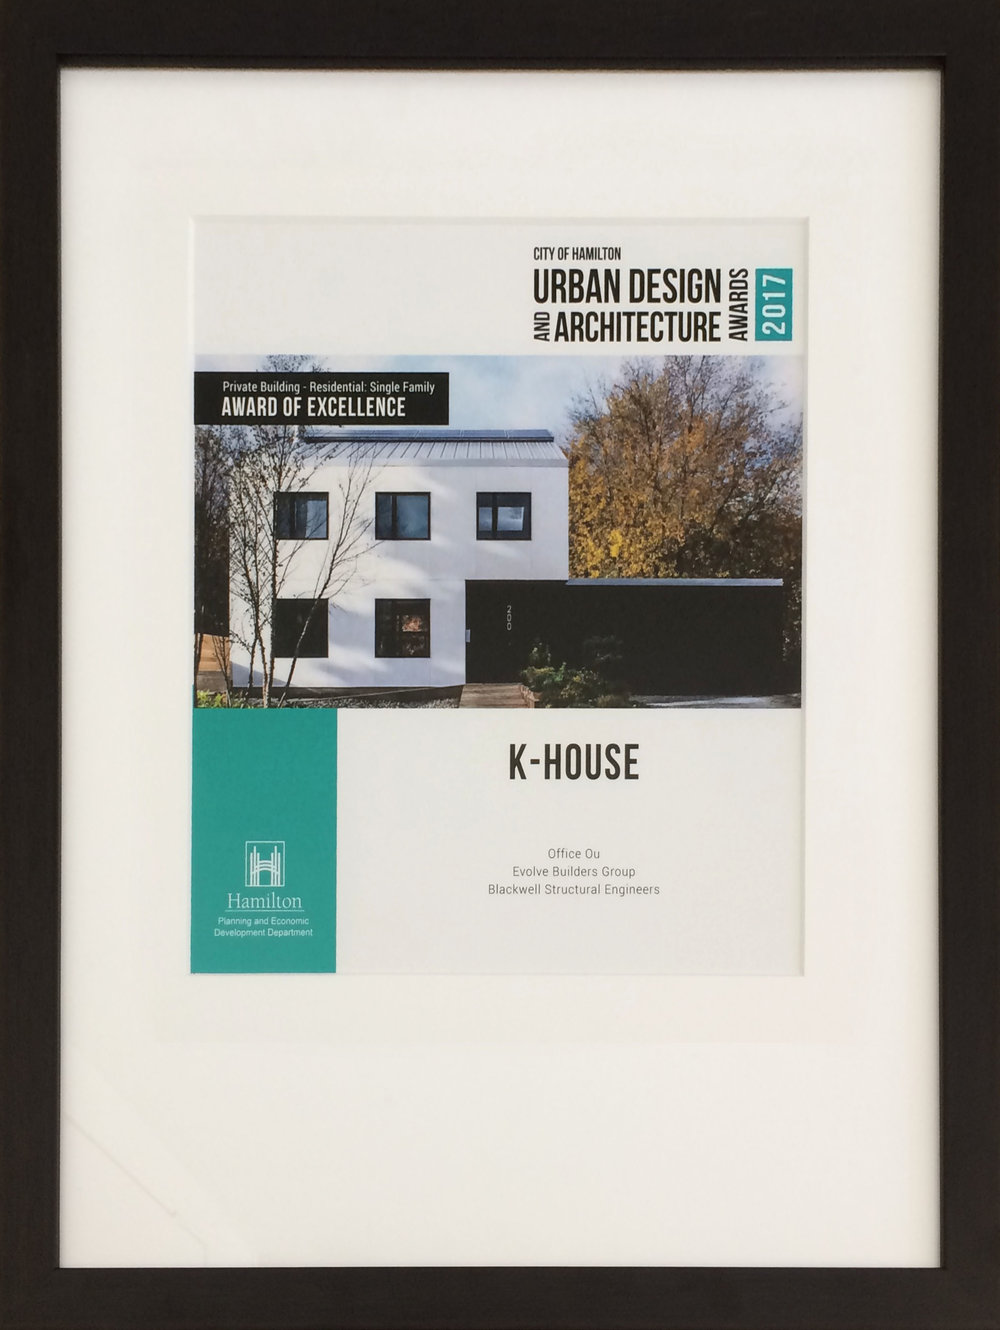 K-House wins City of Hamilton's 2017 Urban Design Awards